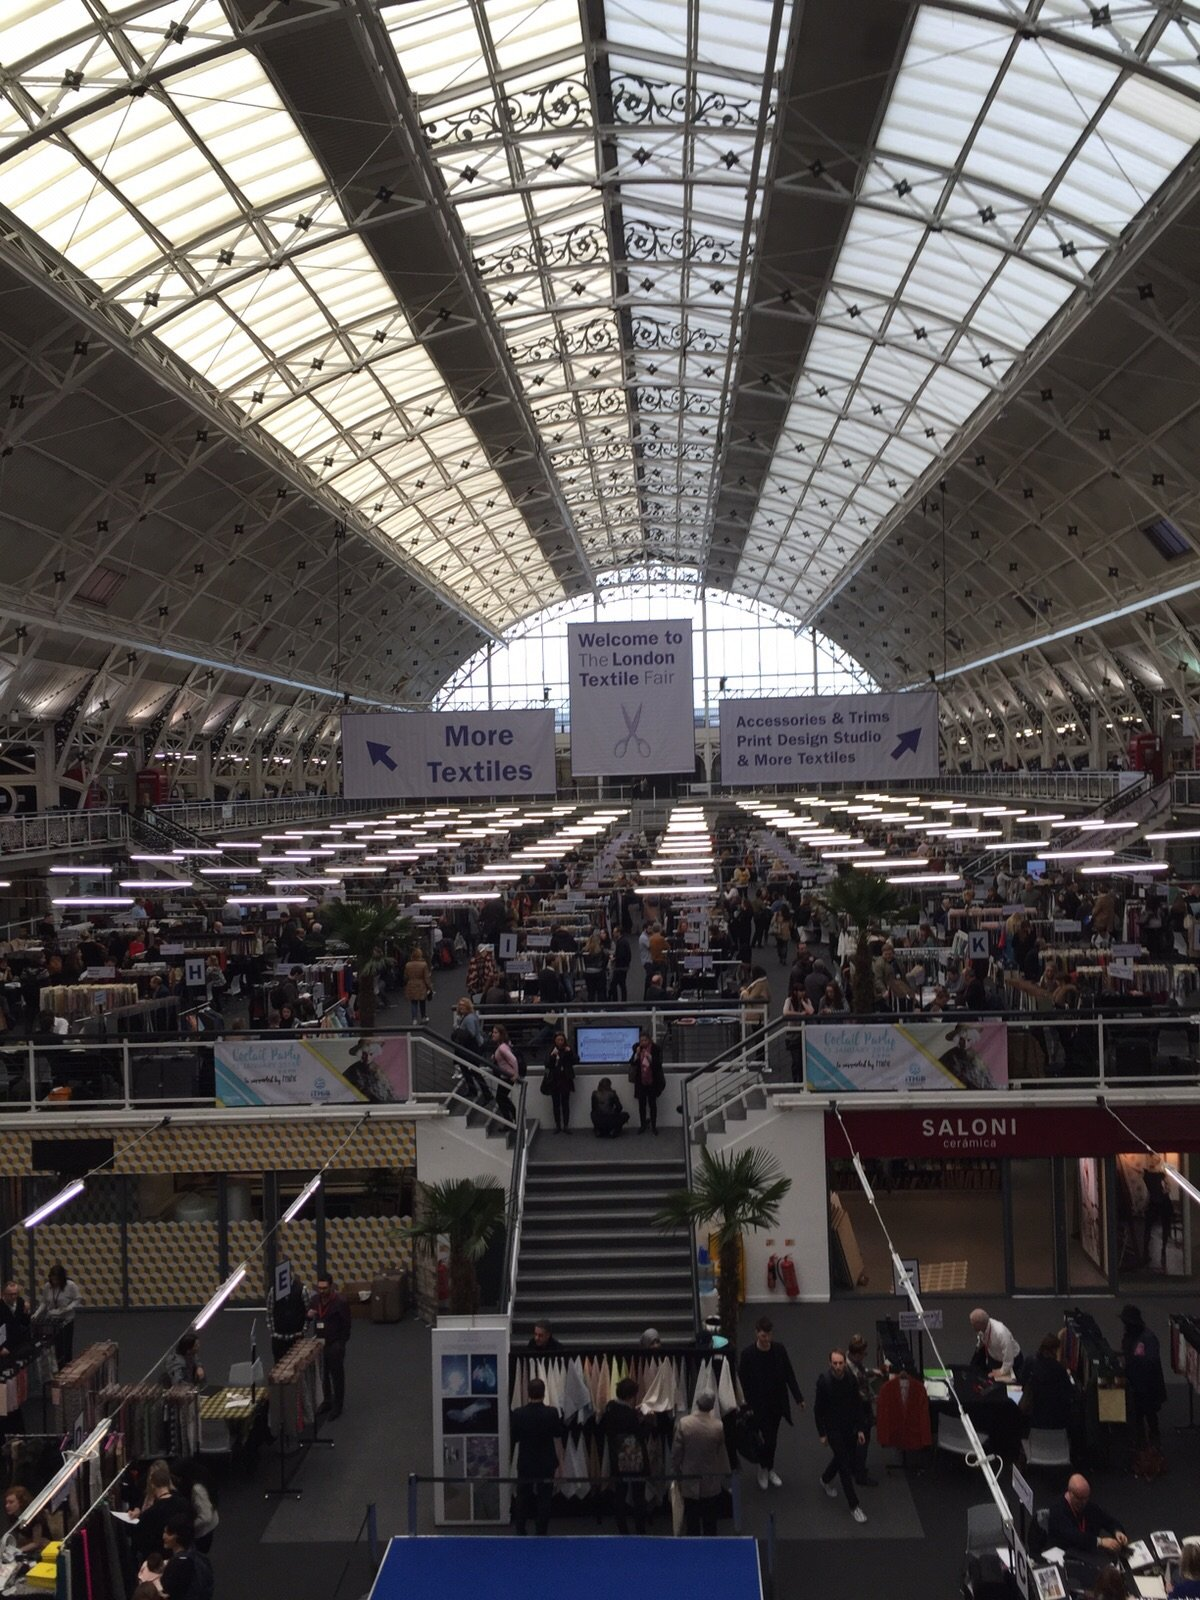 Great location for London Textile Fair